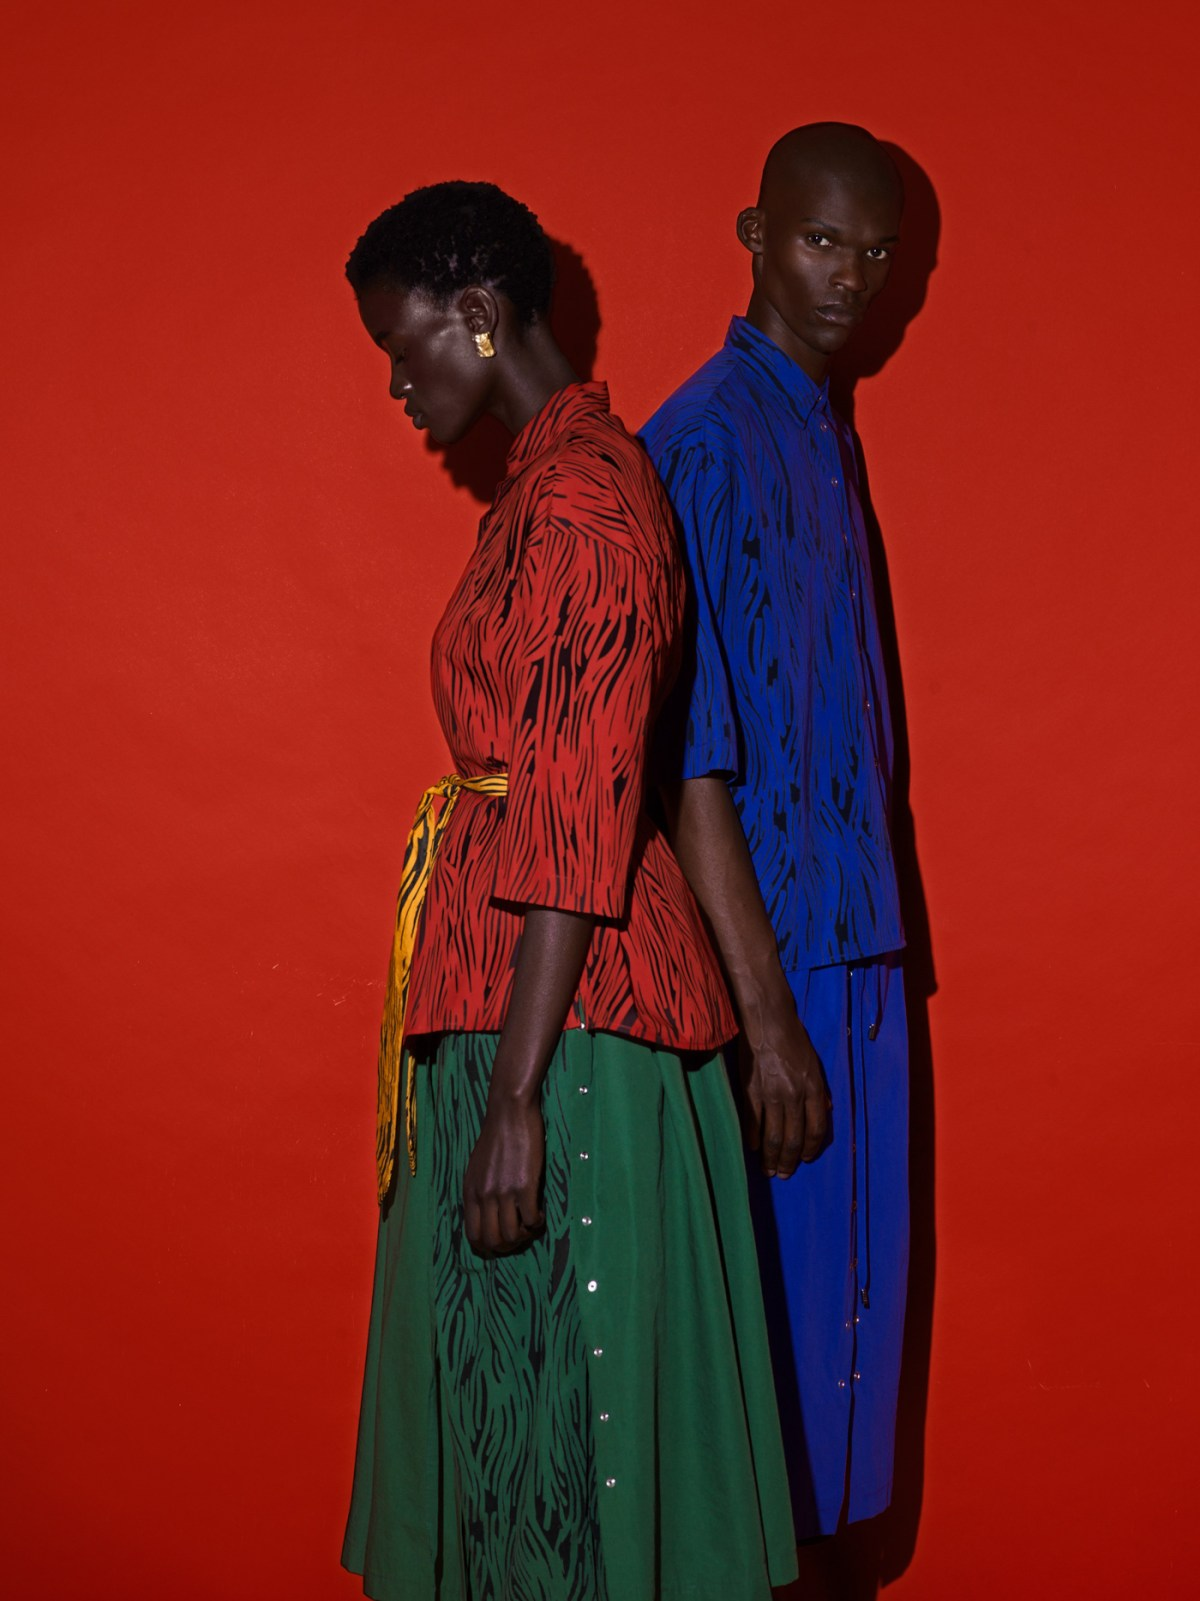 African Woman style photoshoot